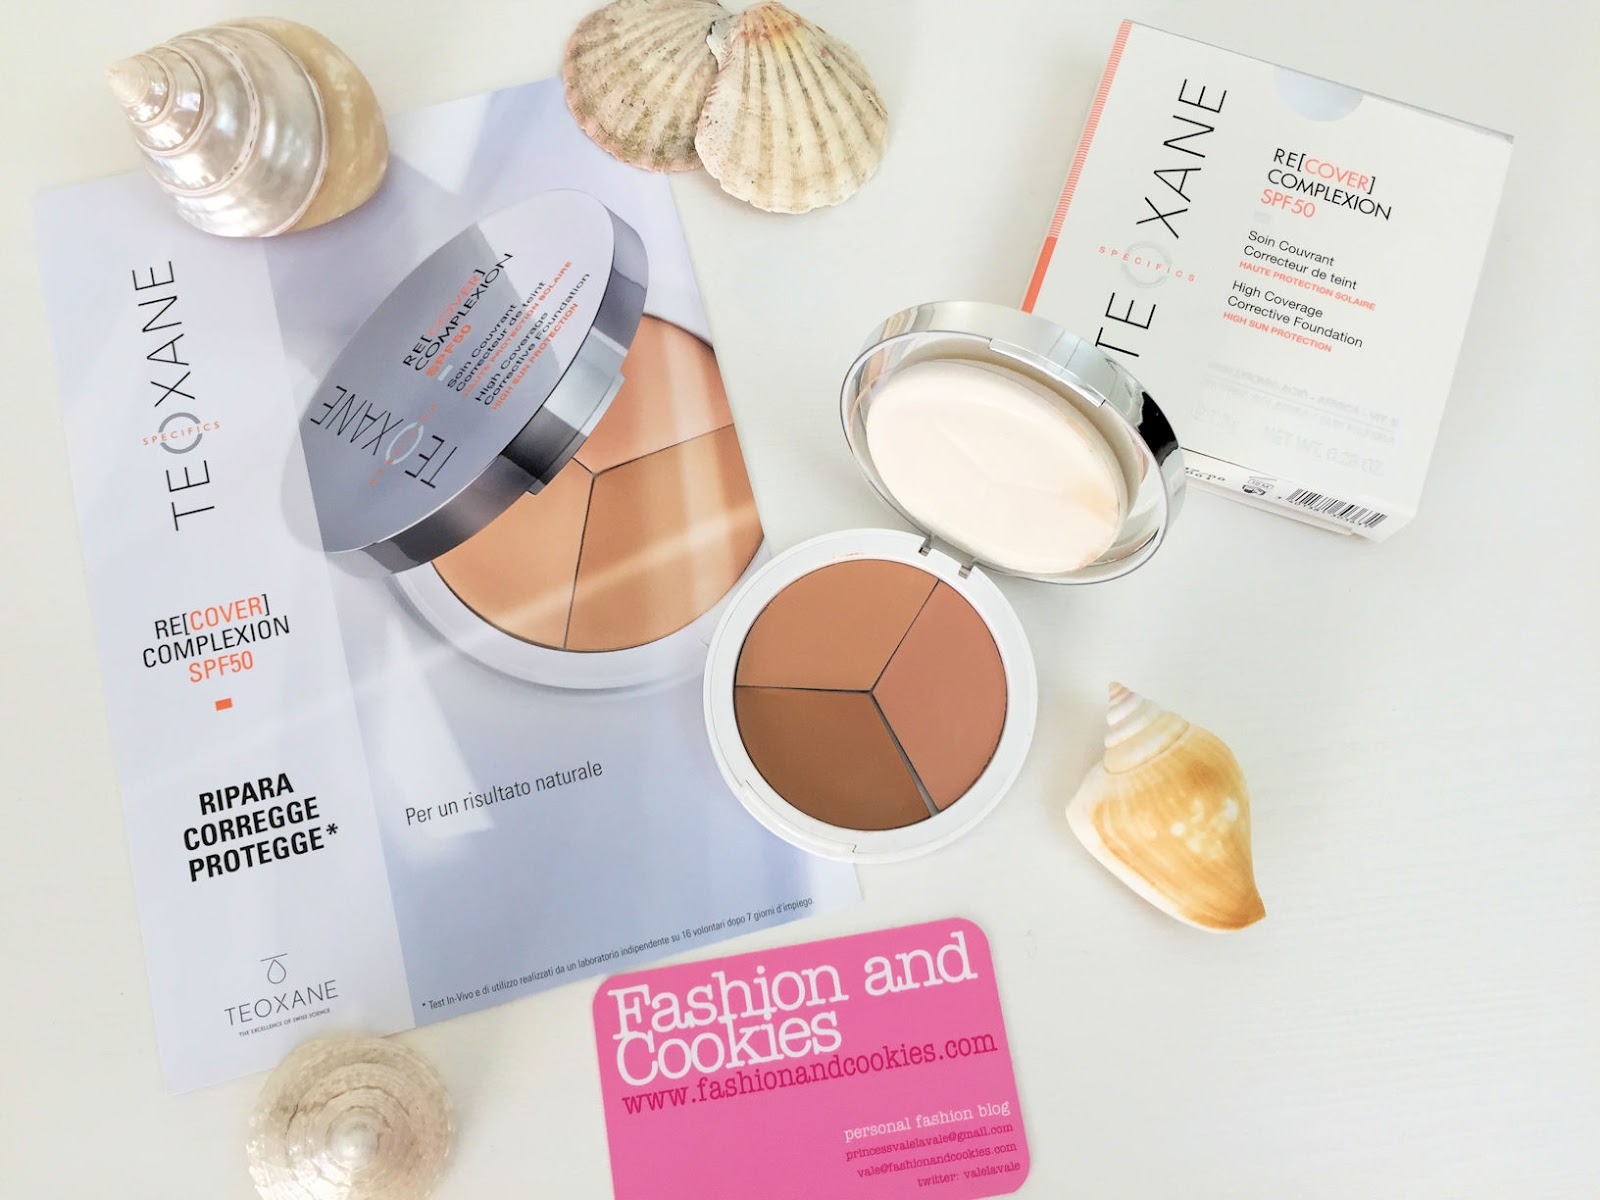 Teoxane ReCover Complexion Foundation on Fashion and Cookies beauty blog, beauty blogger